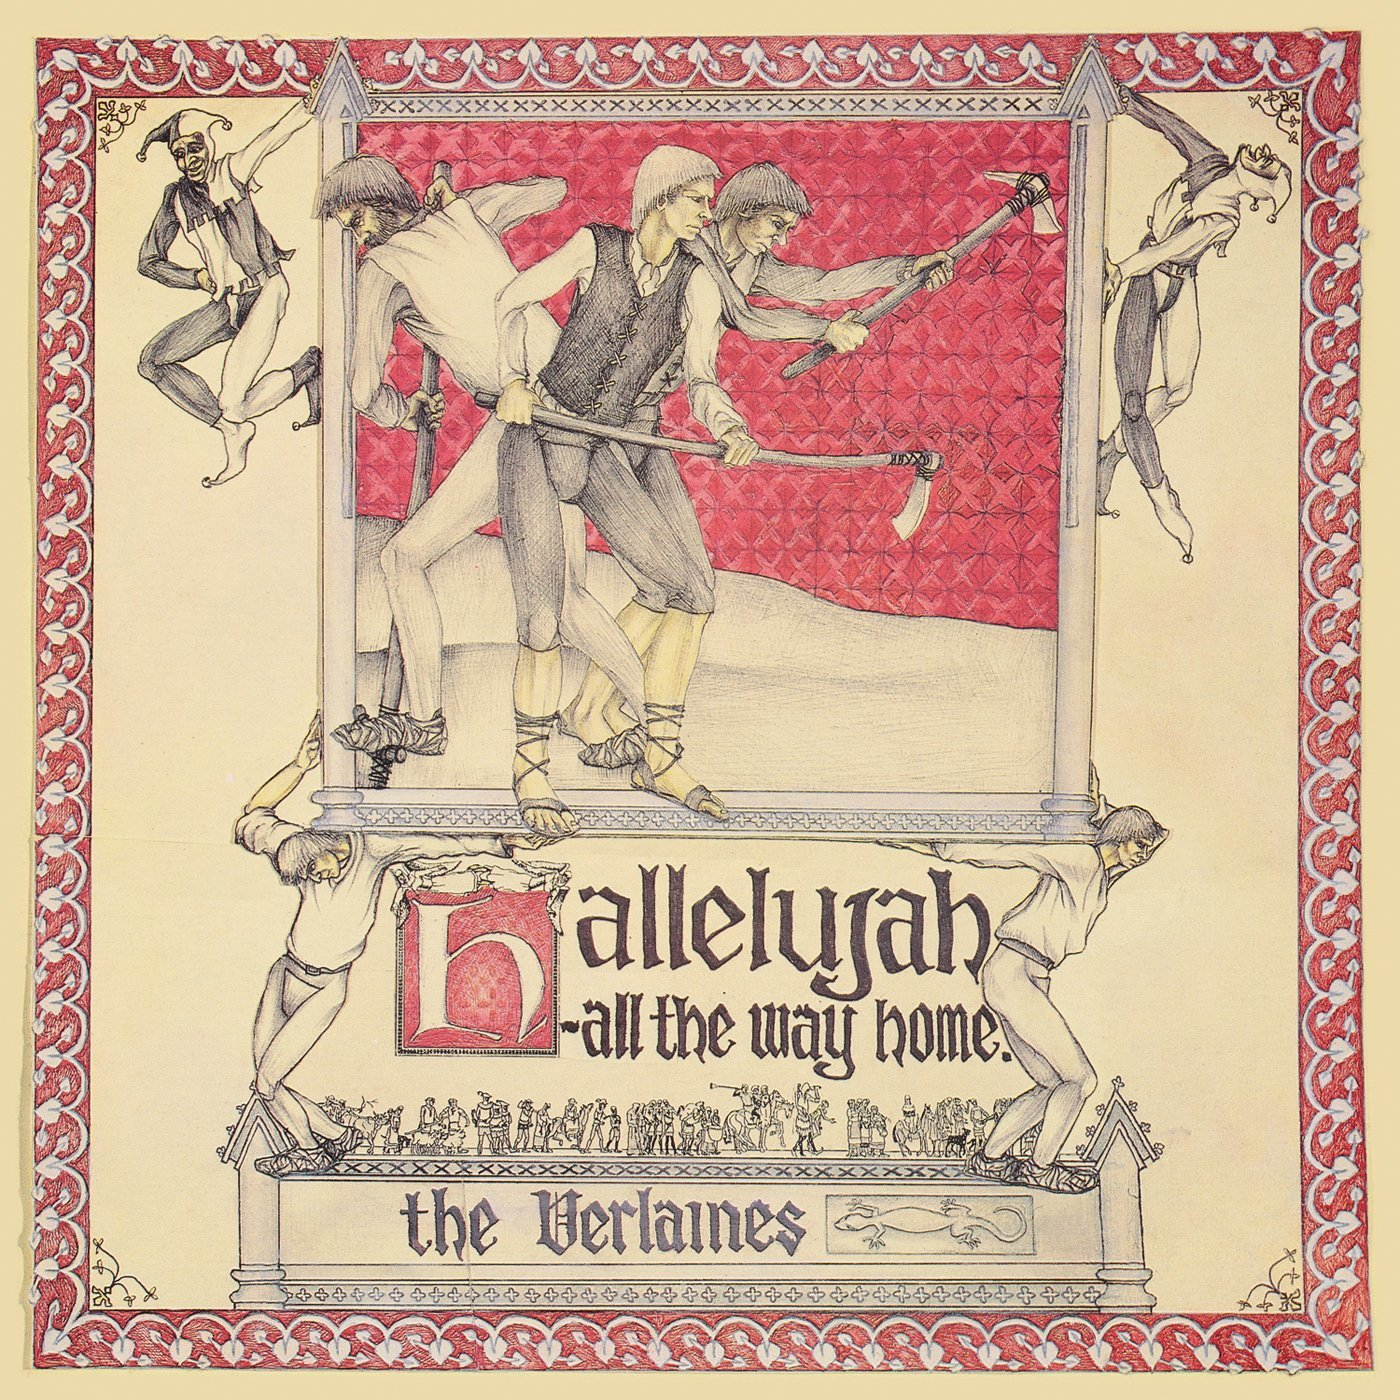 The Verlaines - Hallelujah all the way home